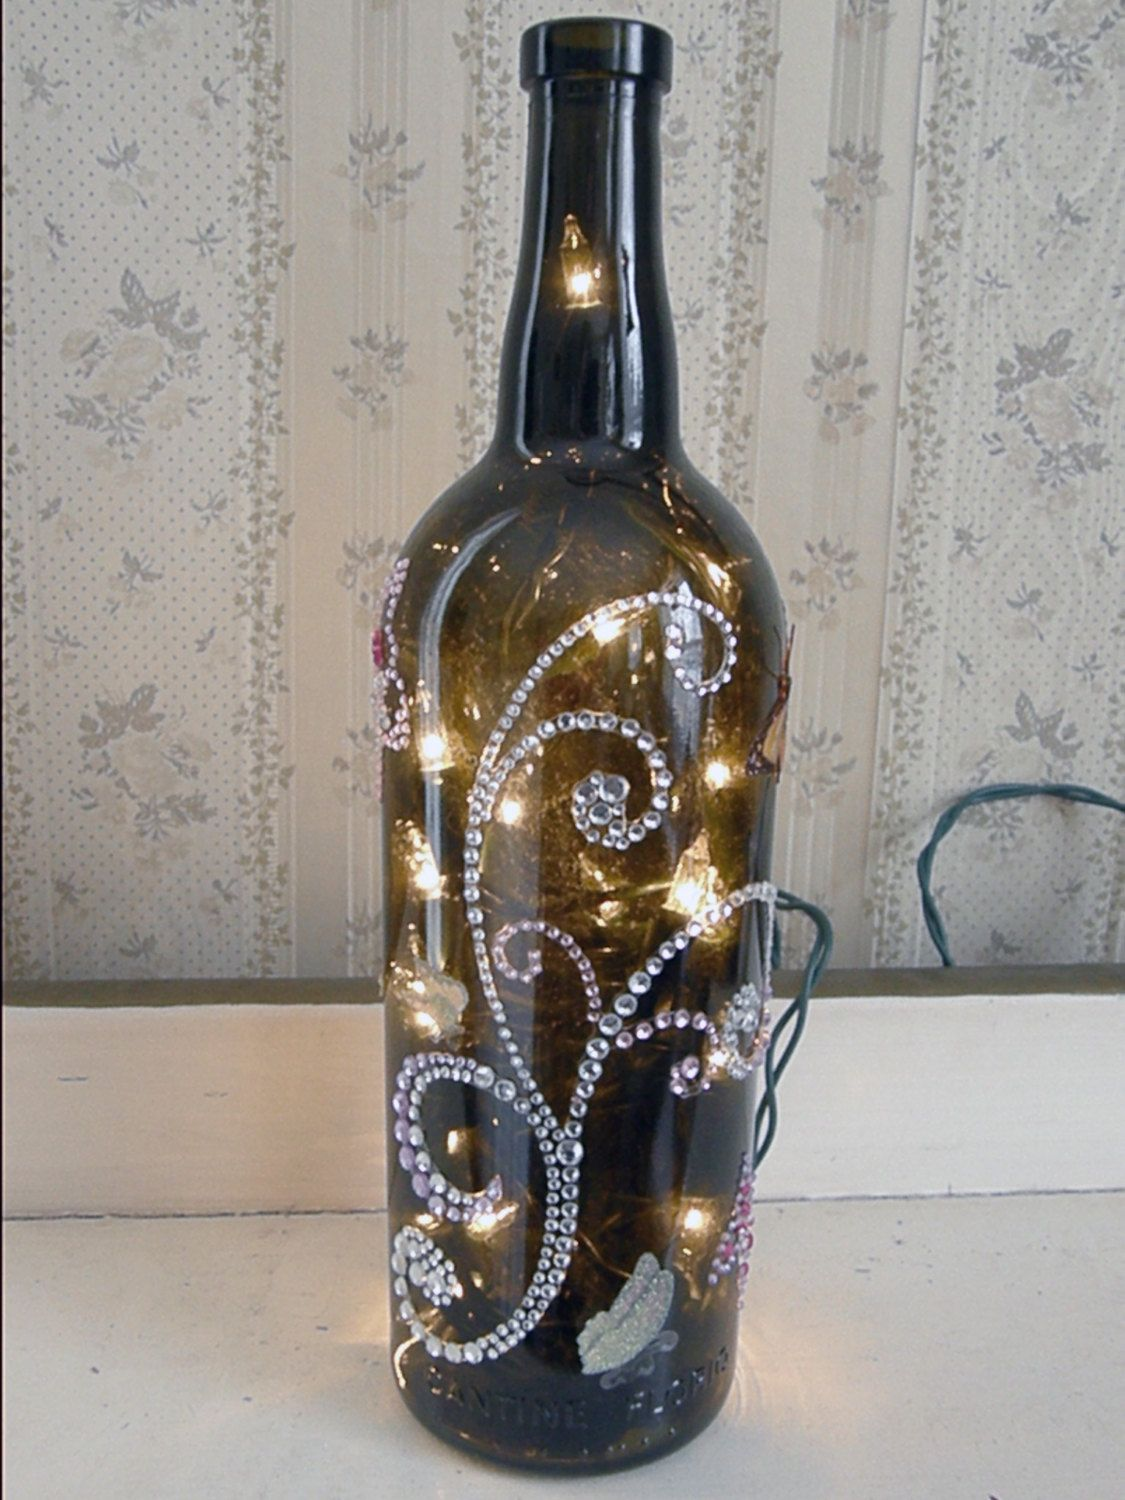 Rhinestone jewels for crafts - Rhinestone And Glitter Butterflies Lighted Wine Bottle